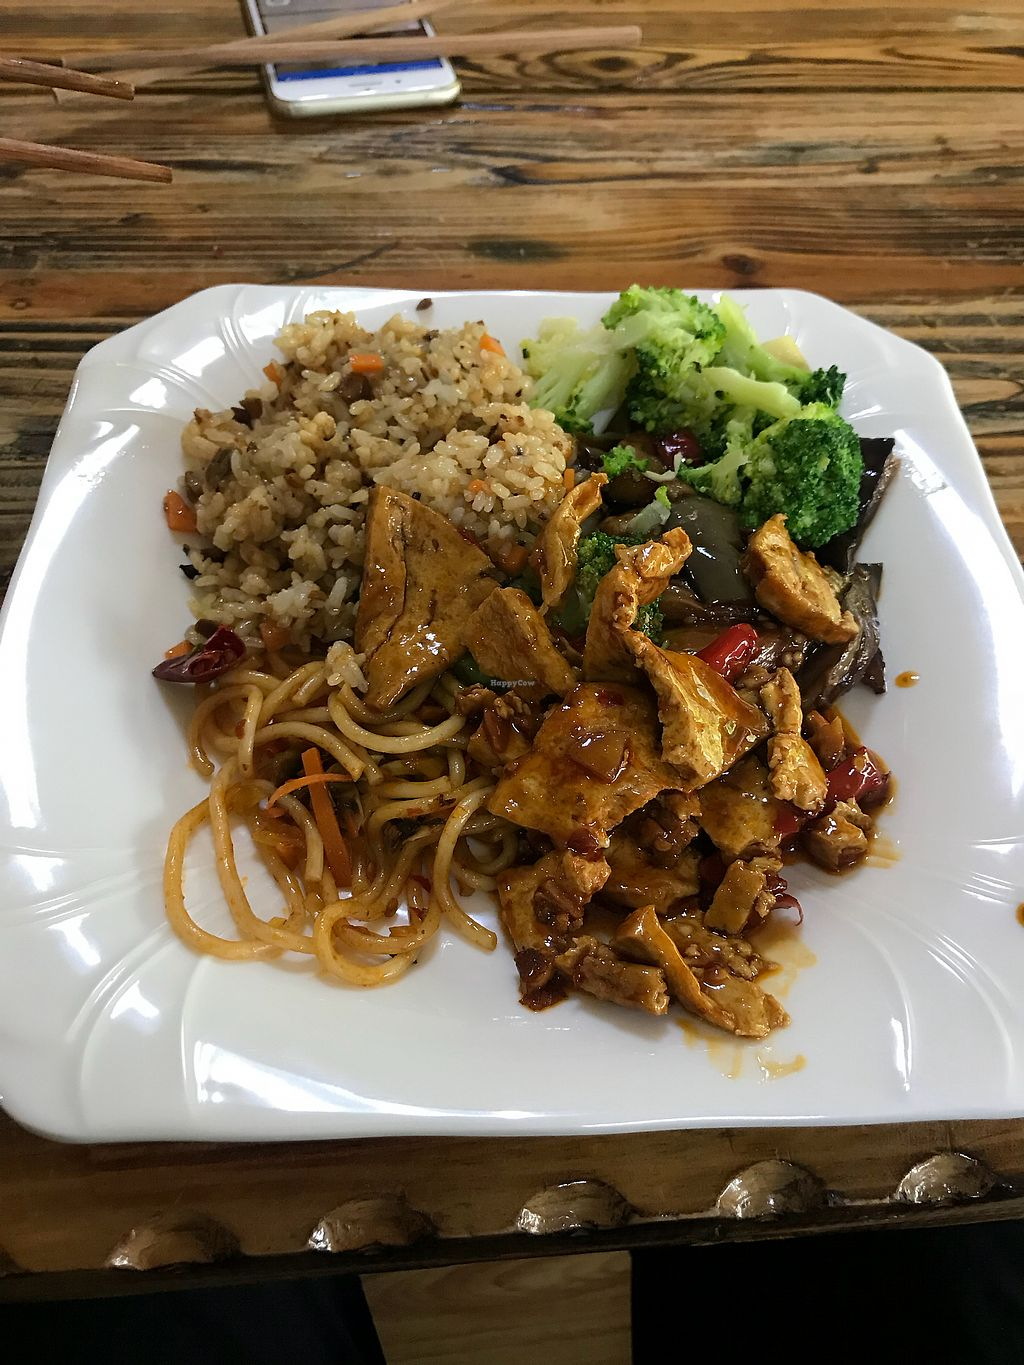 """Photo of Zhong Lian Vegetarian  by <a href=""""/members/profile/DaveButler62"""">DaveButler62</a> <br/>yum! <br/> August 15, 2017  - <a href='/contact/abuse/image/75840/292946'>Report</a>"""